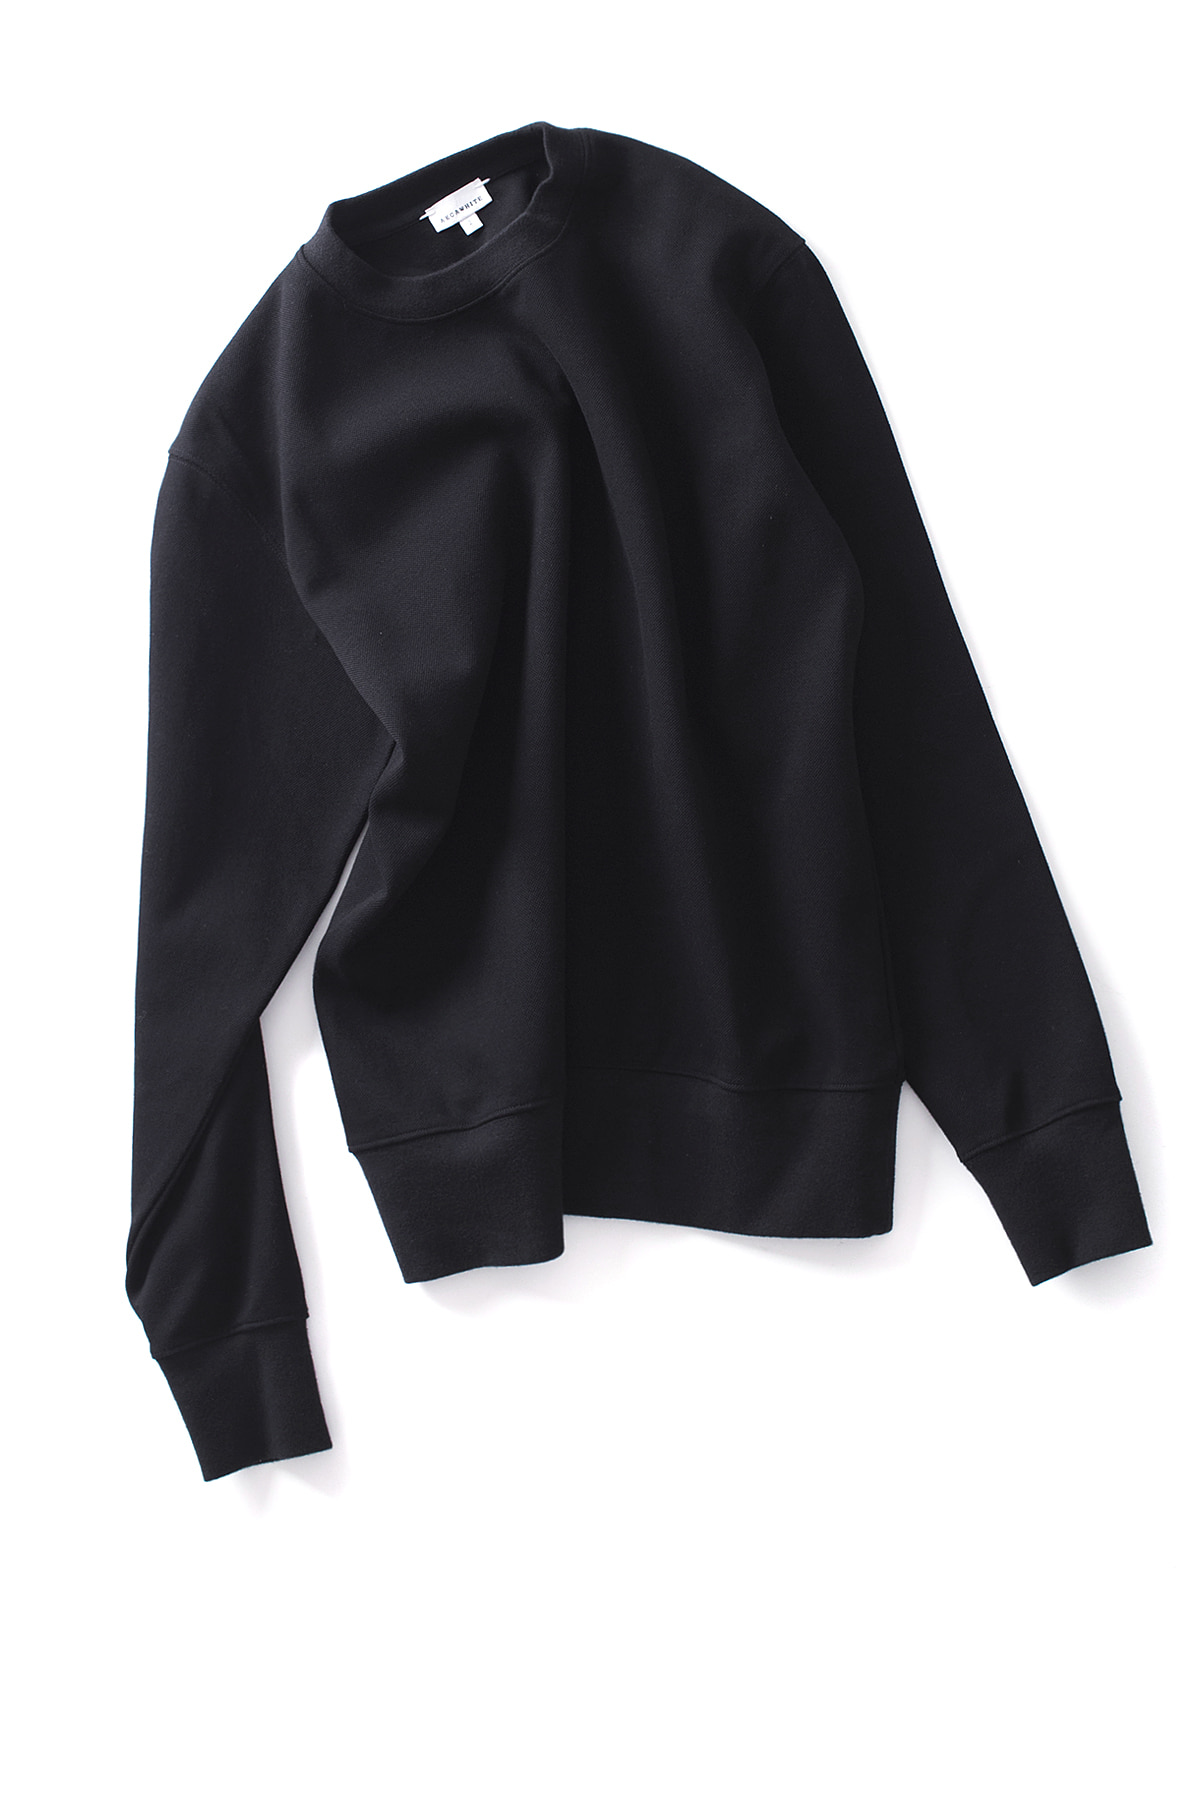 AECA WHITE : Sweat Shirt (Black)